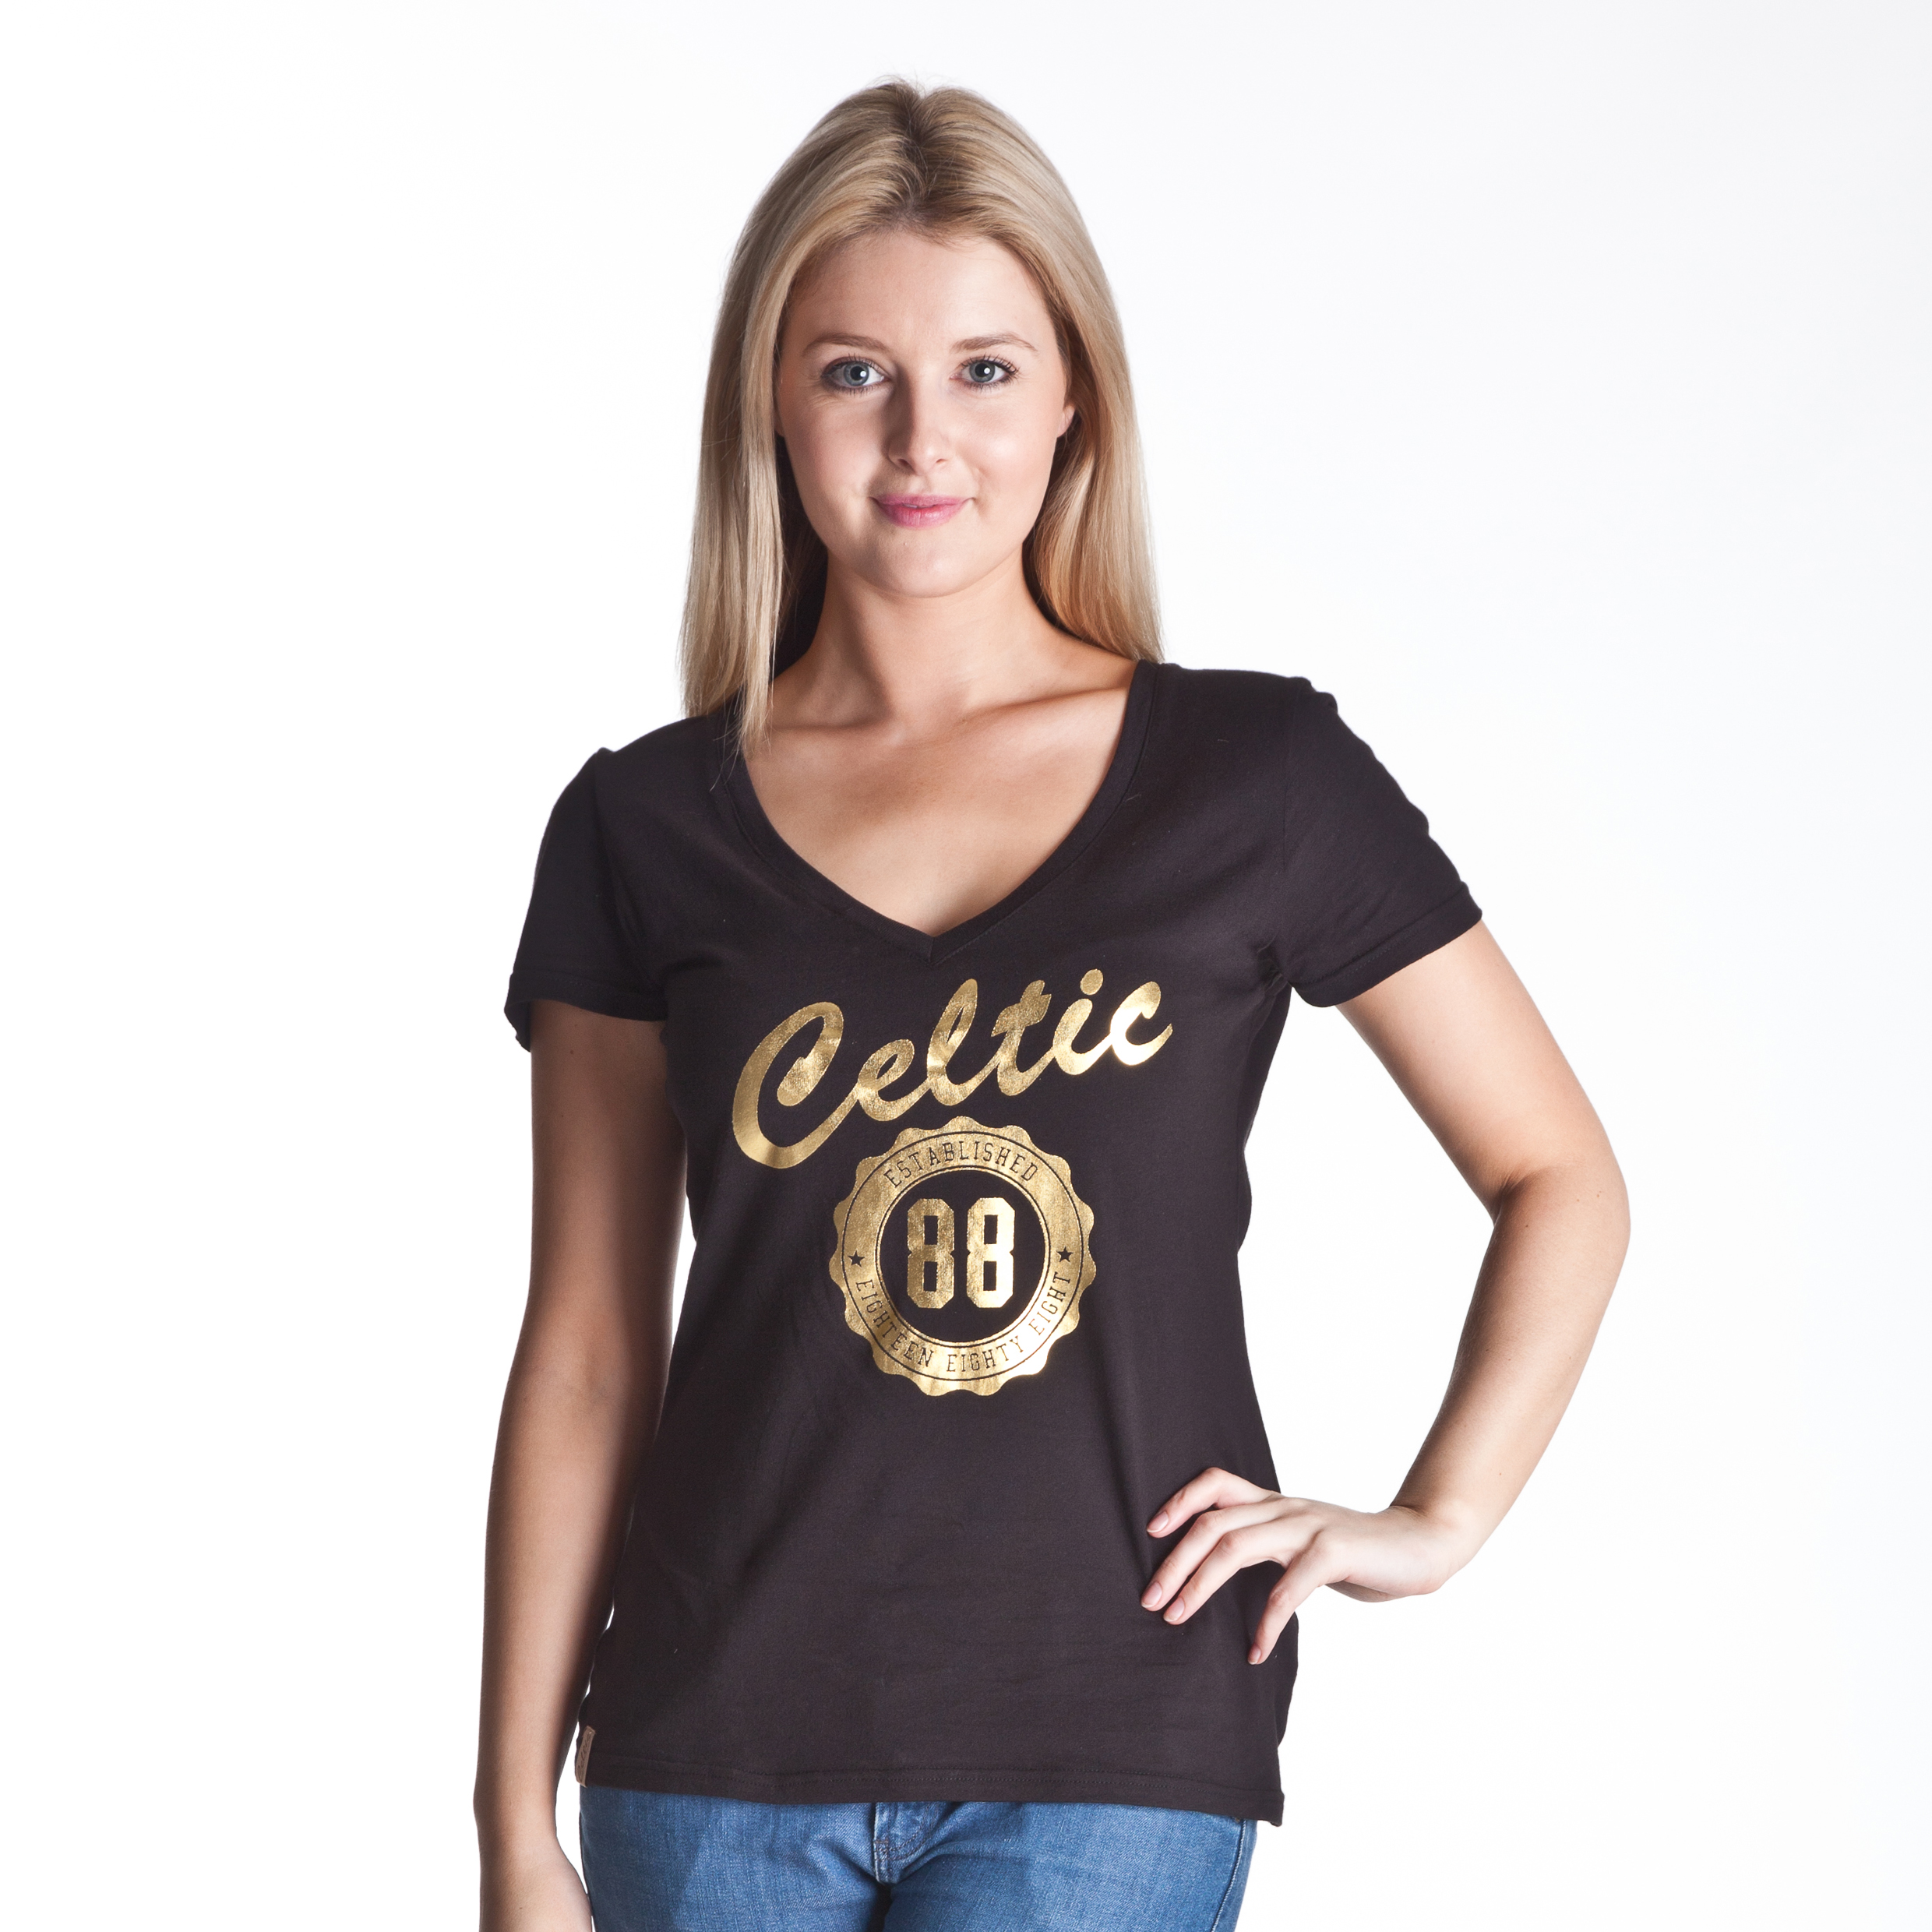 Celtic Deep V Neck Graphic T-Shirt - Black - Womens